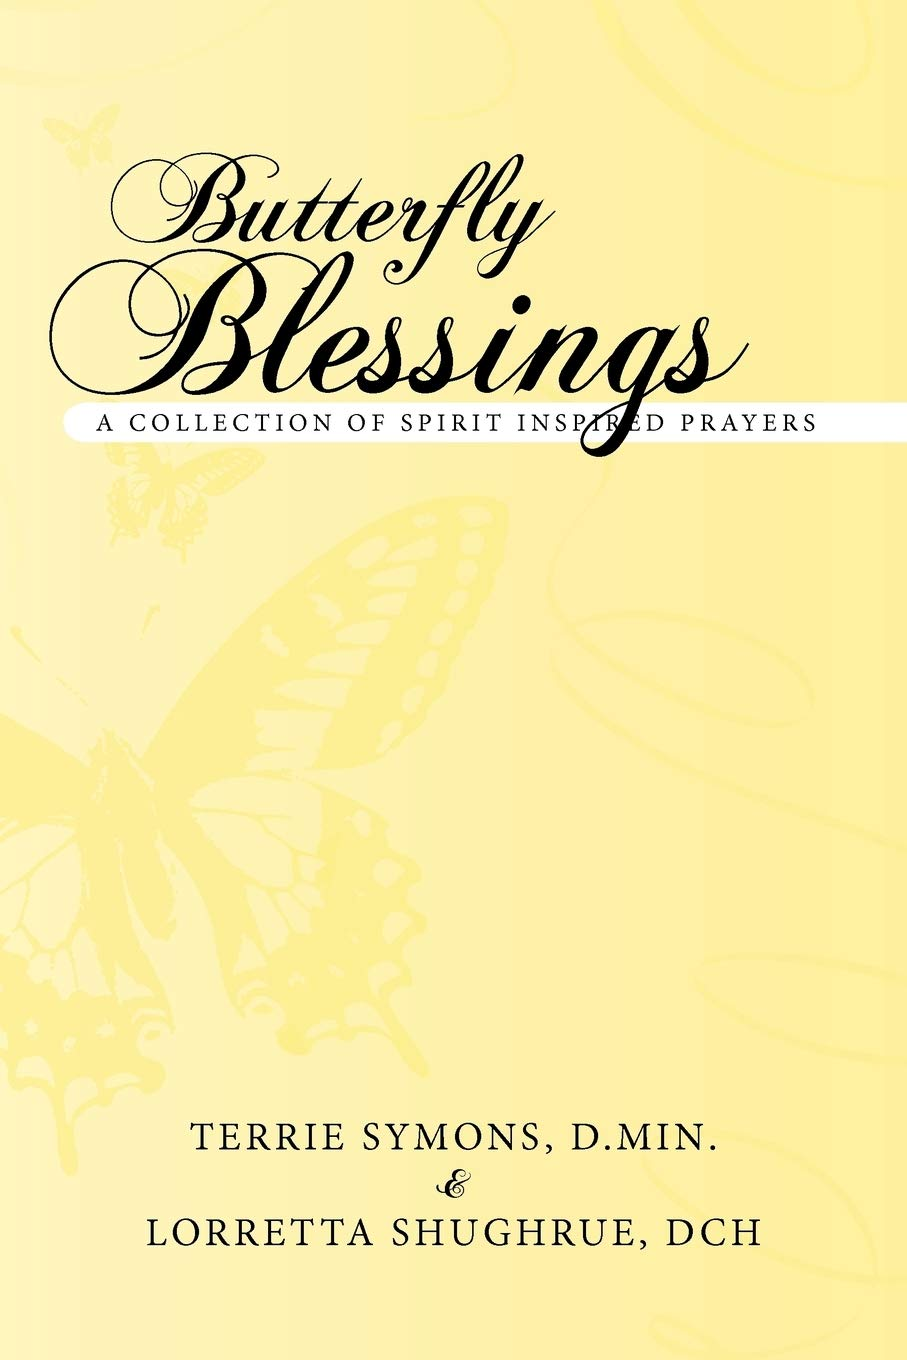 Butterfly Blessings: A Collection of Spirit Inspired Prayers